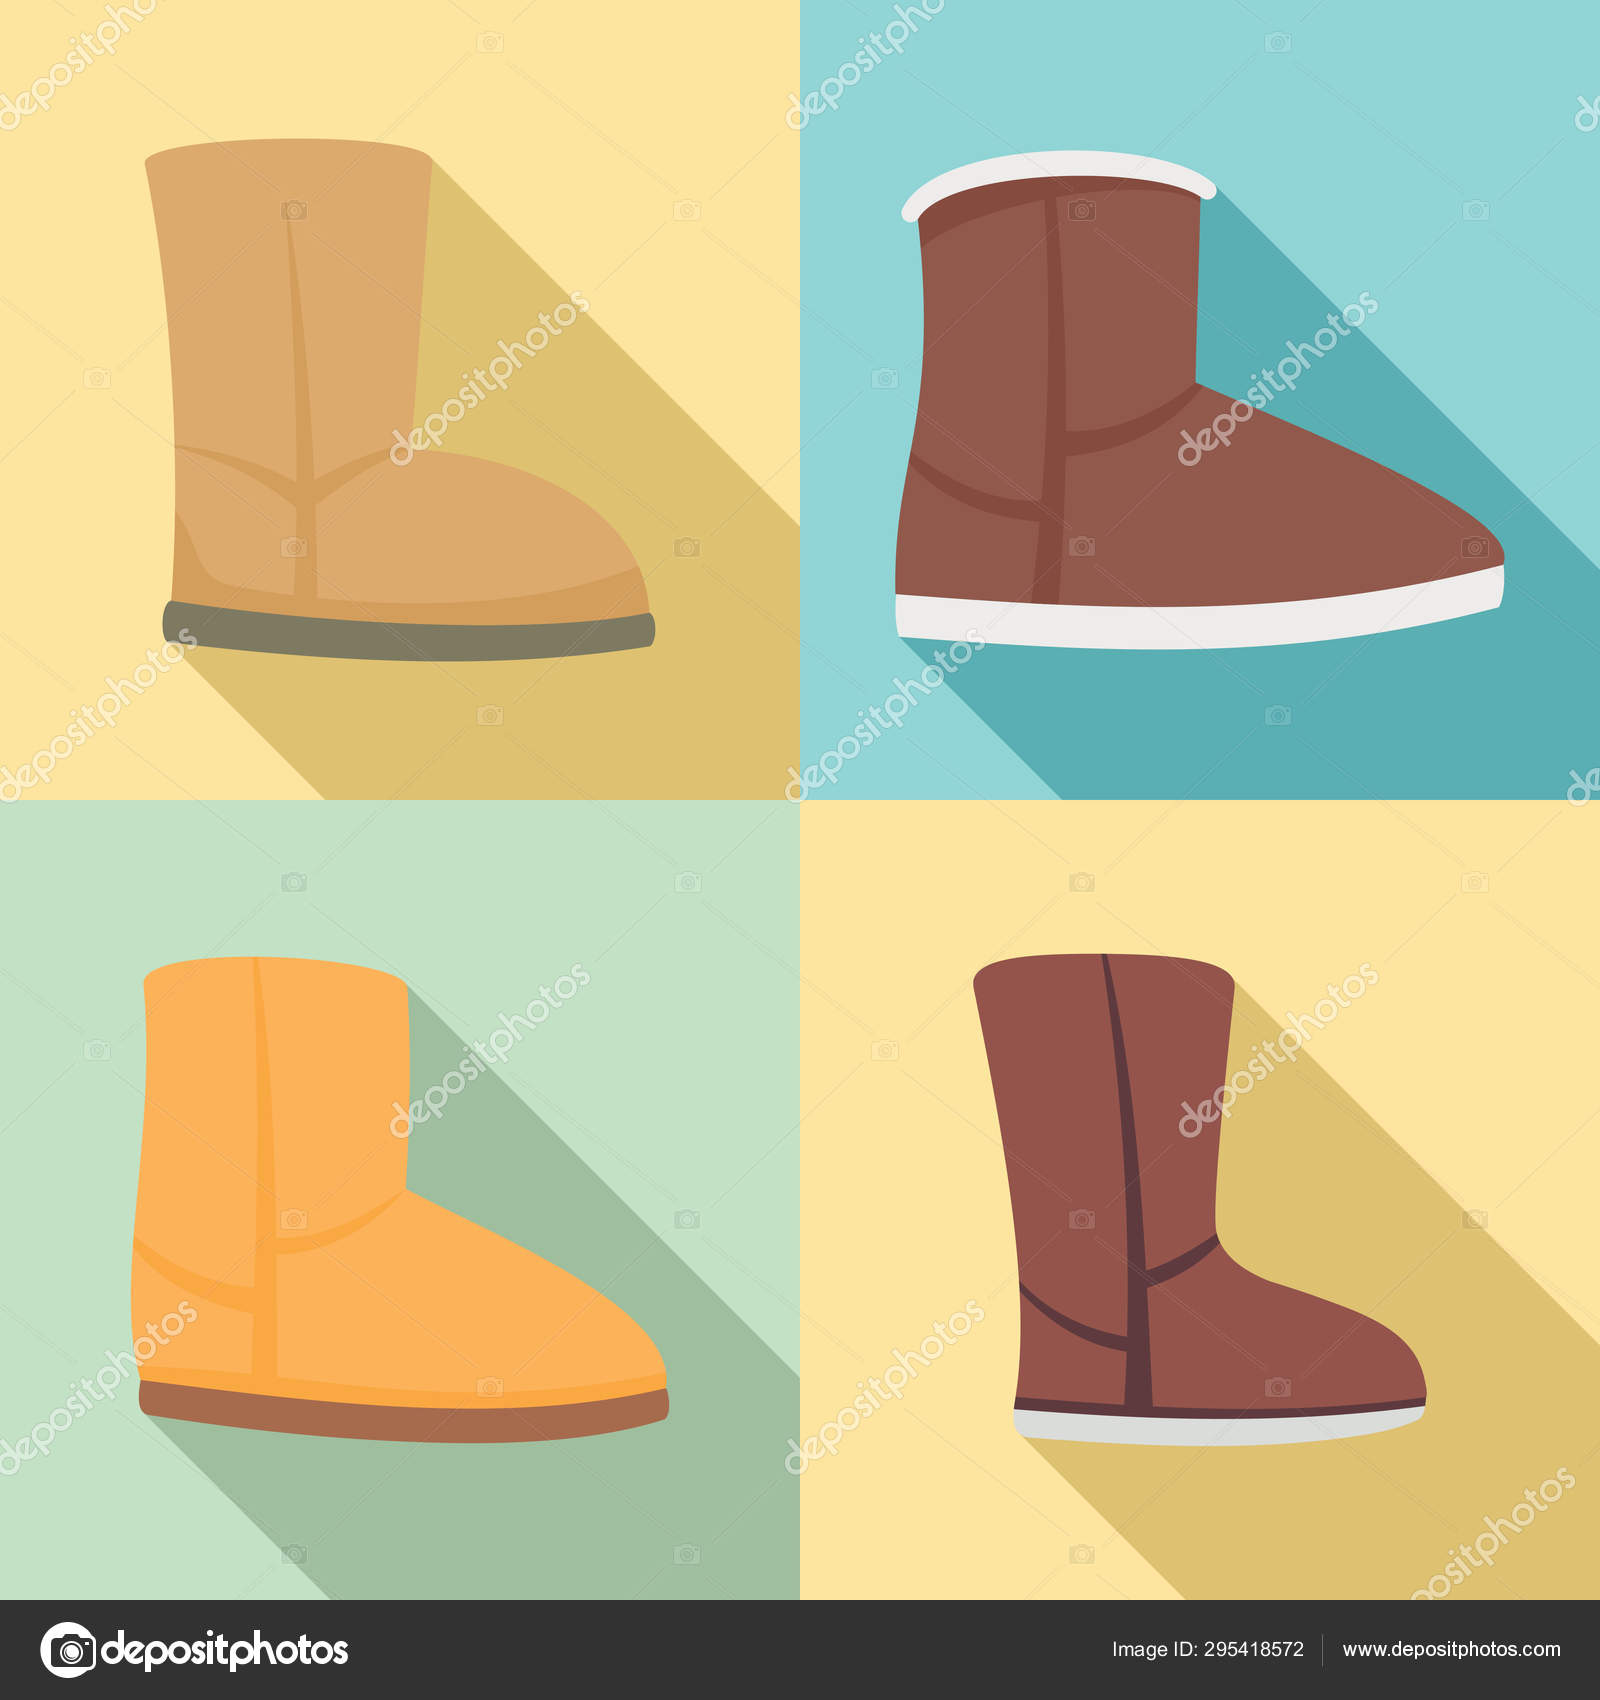 9058412d167 Ugg boots icons set, flat style — Stock Vector © anatolir #295418572